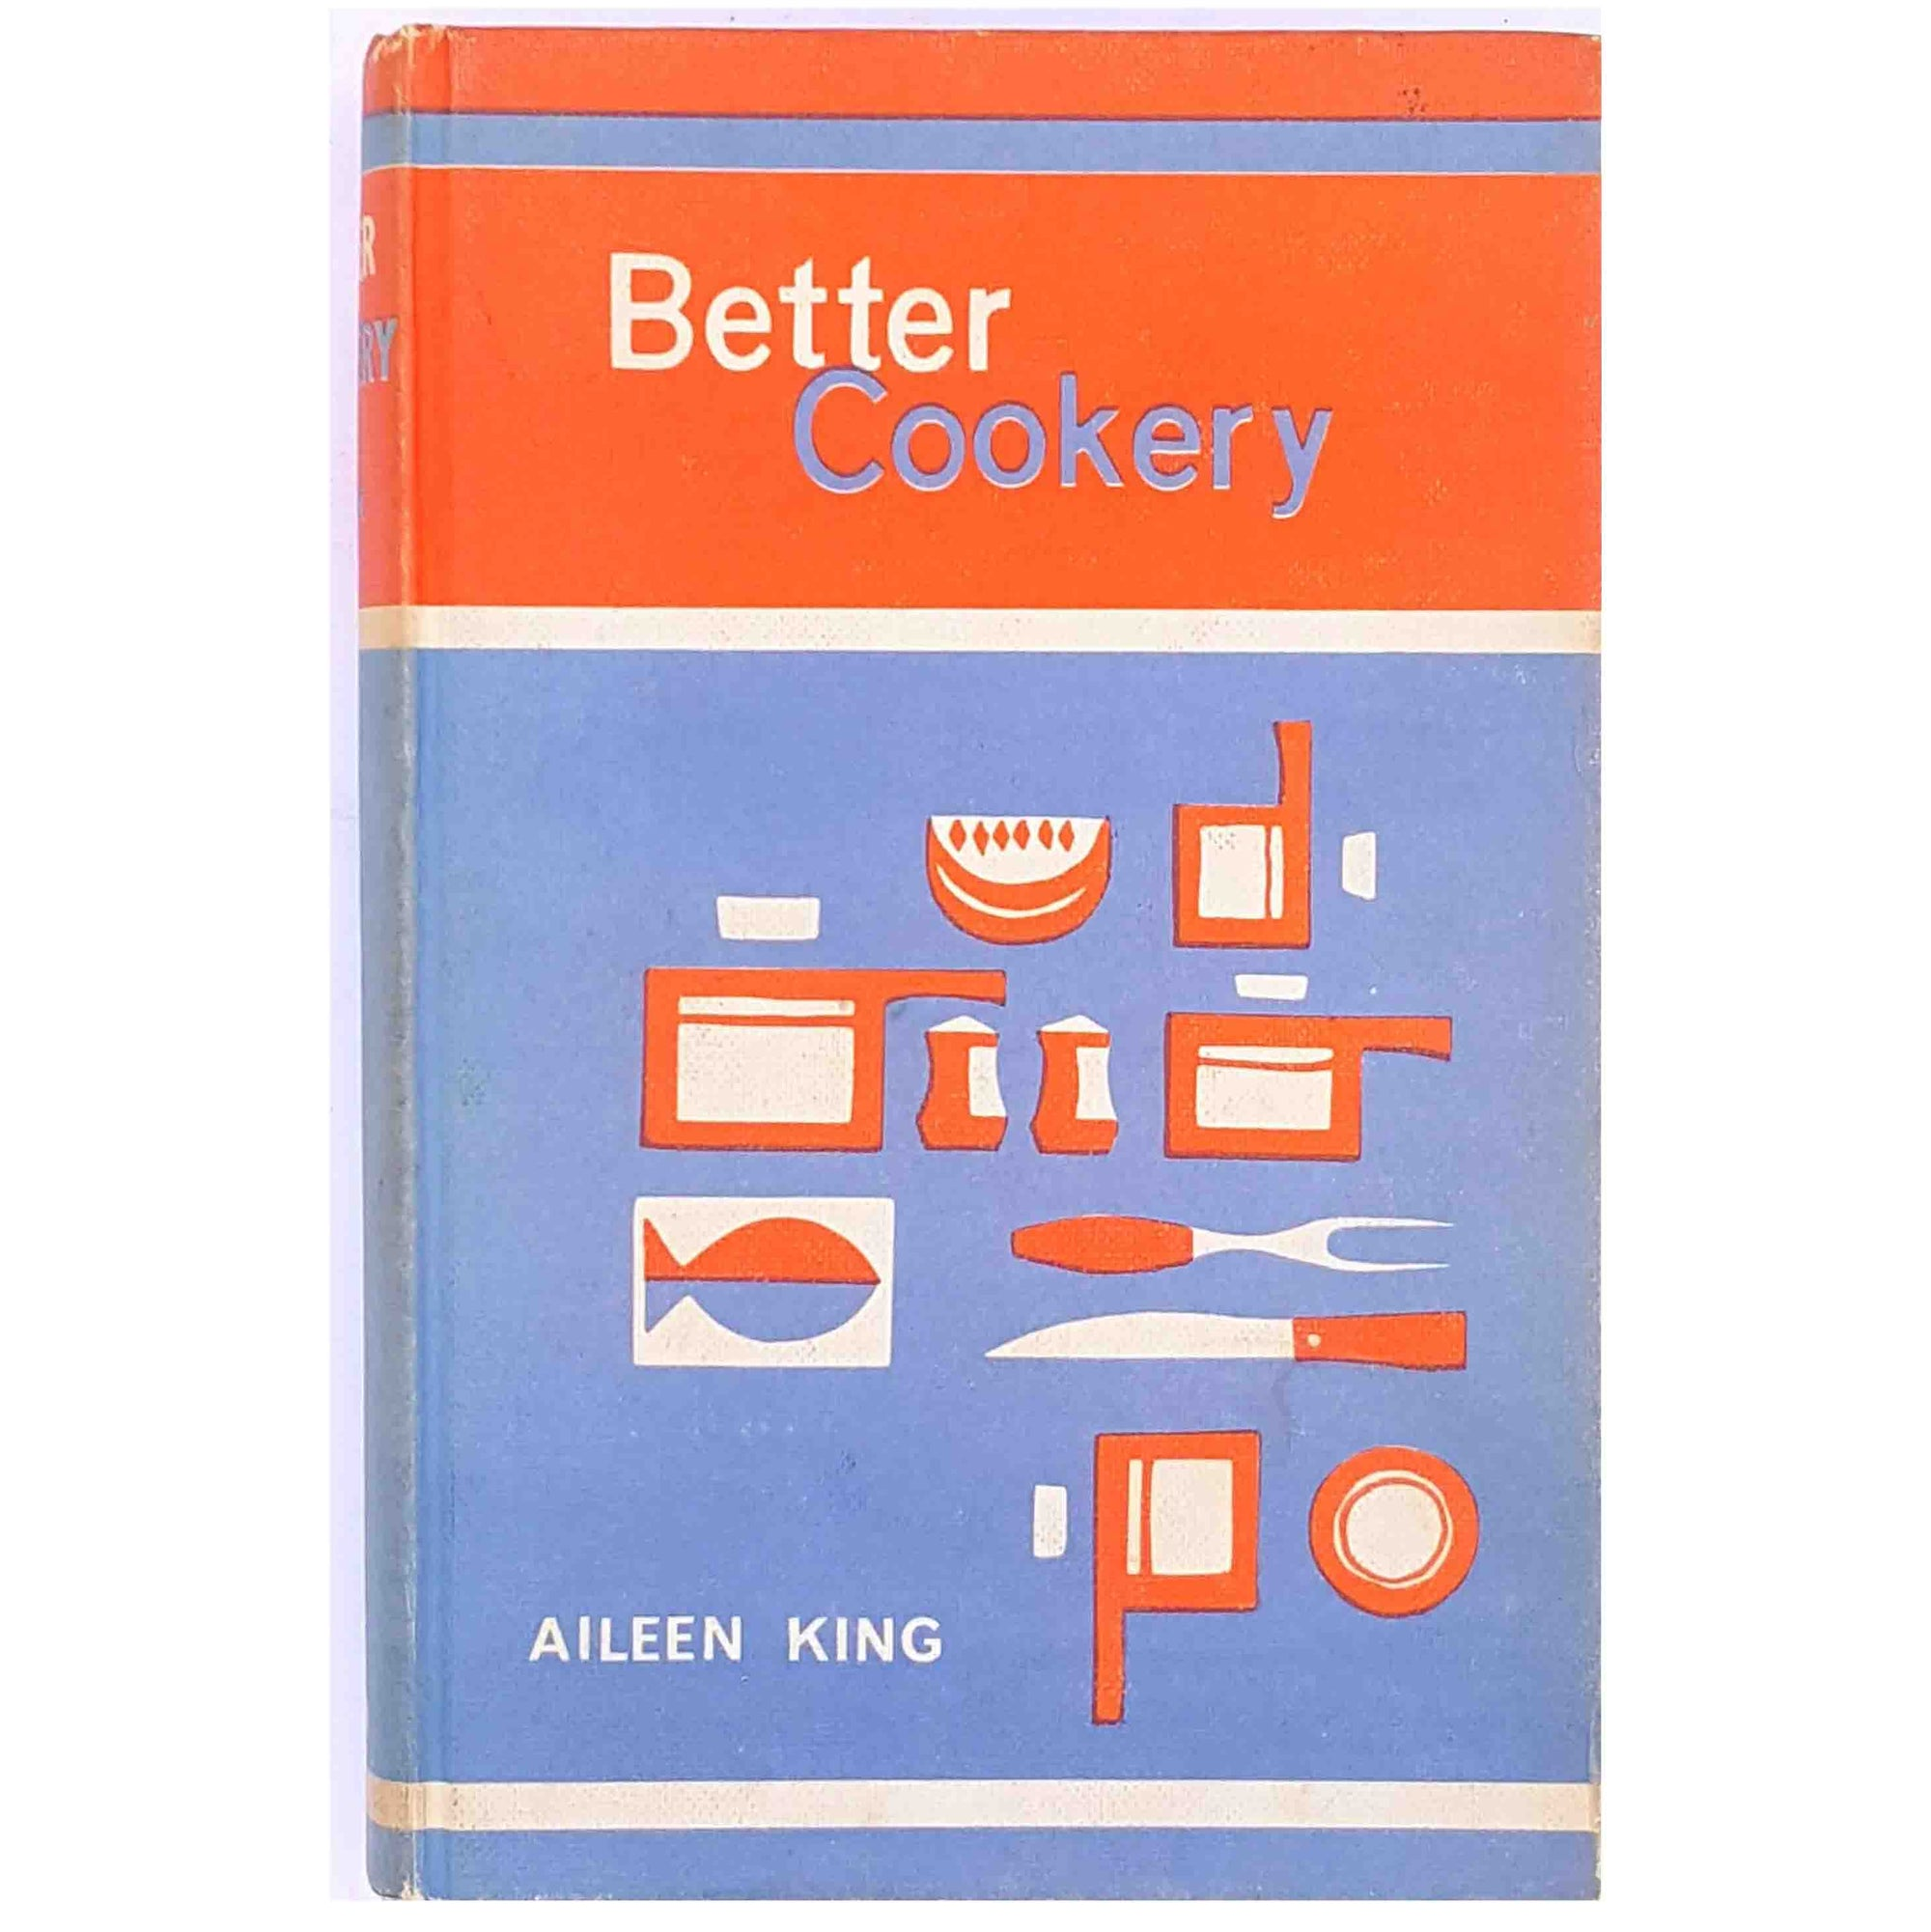 Better Cookery, Aileen King, 1964